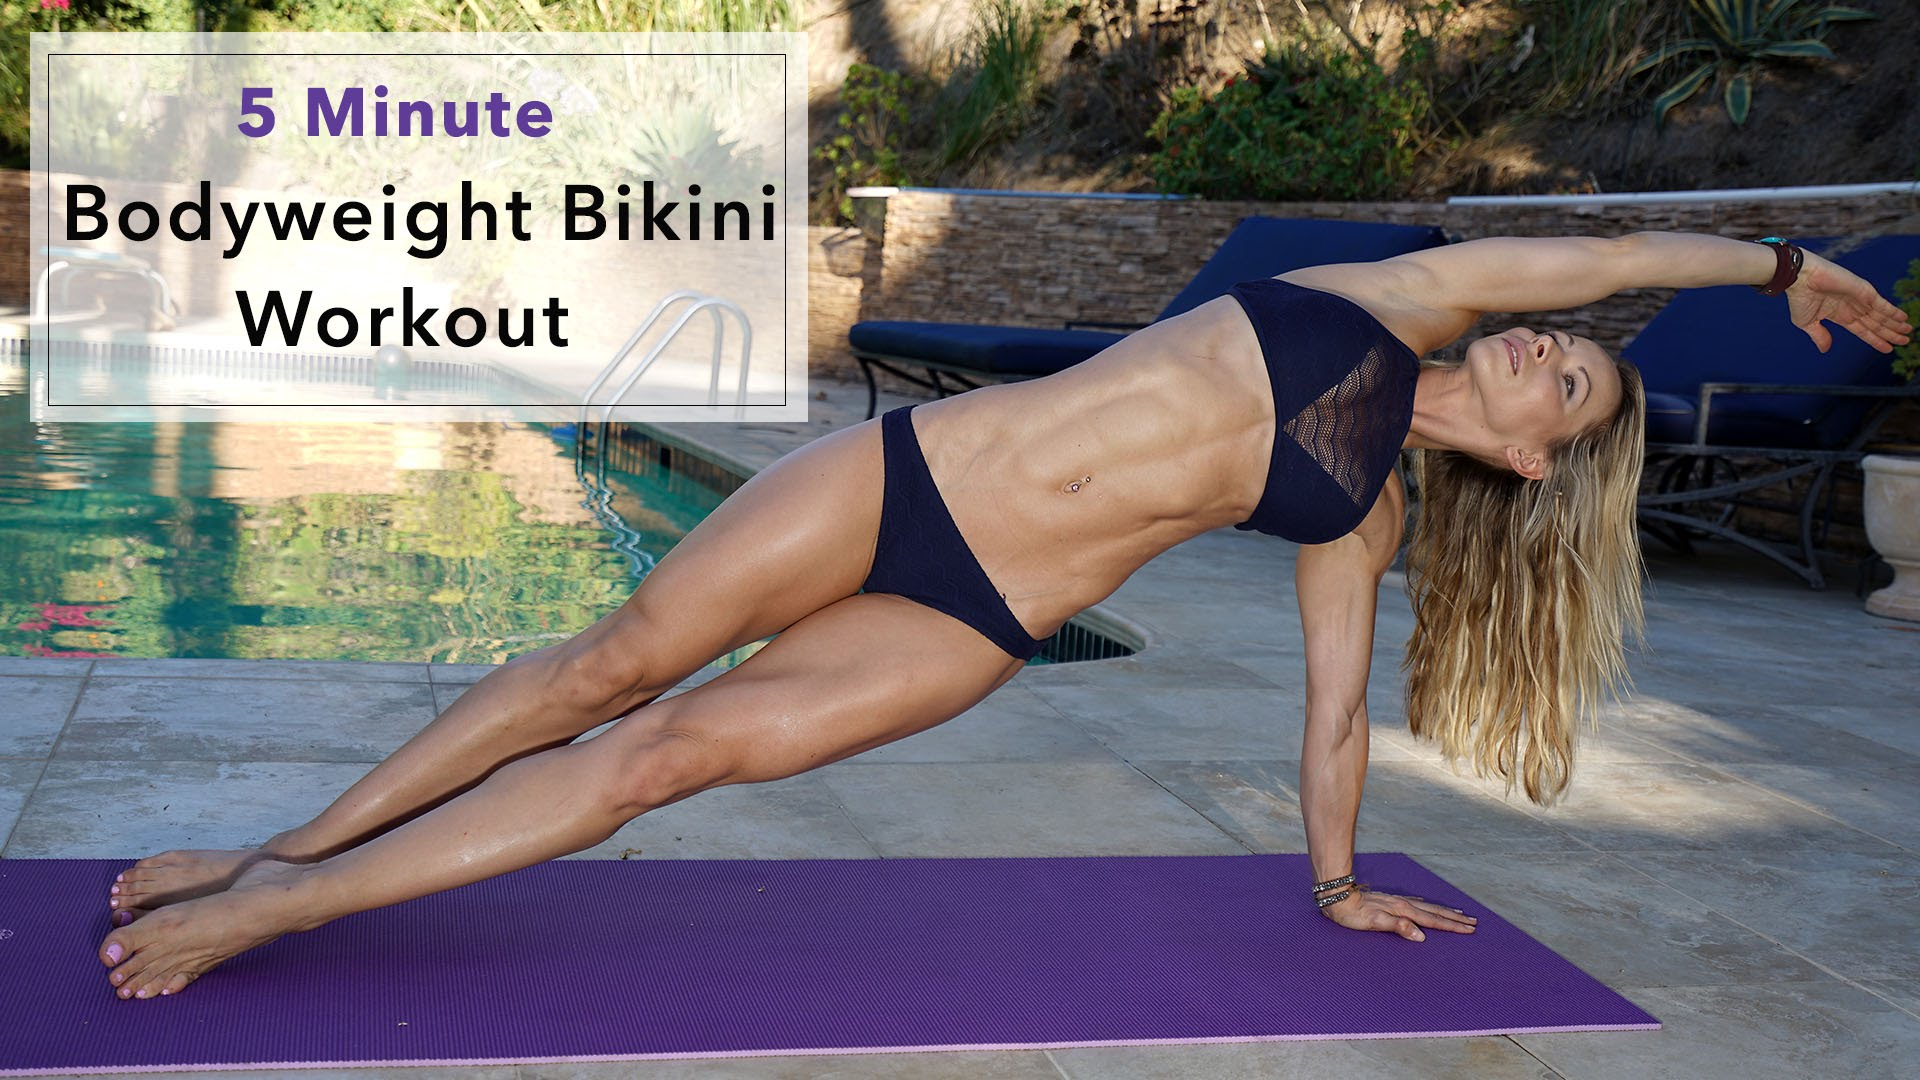 Zuzka Light – 5 Minute Fat Burning Bikini Workout